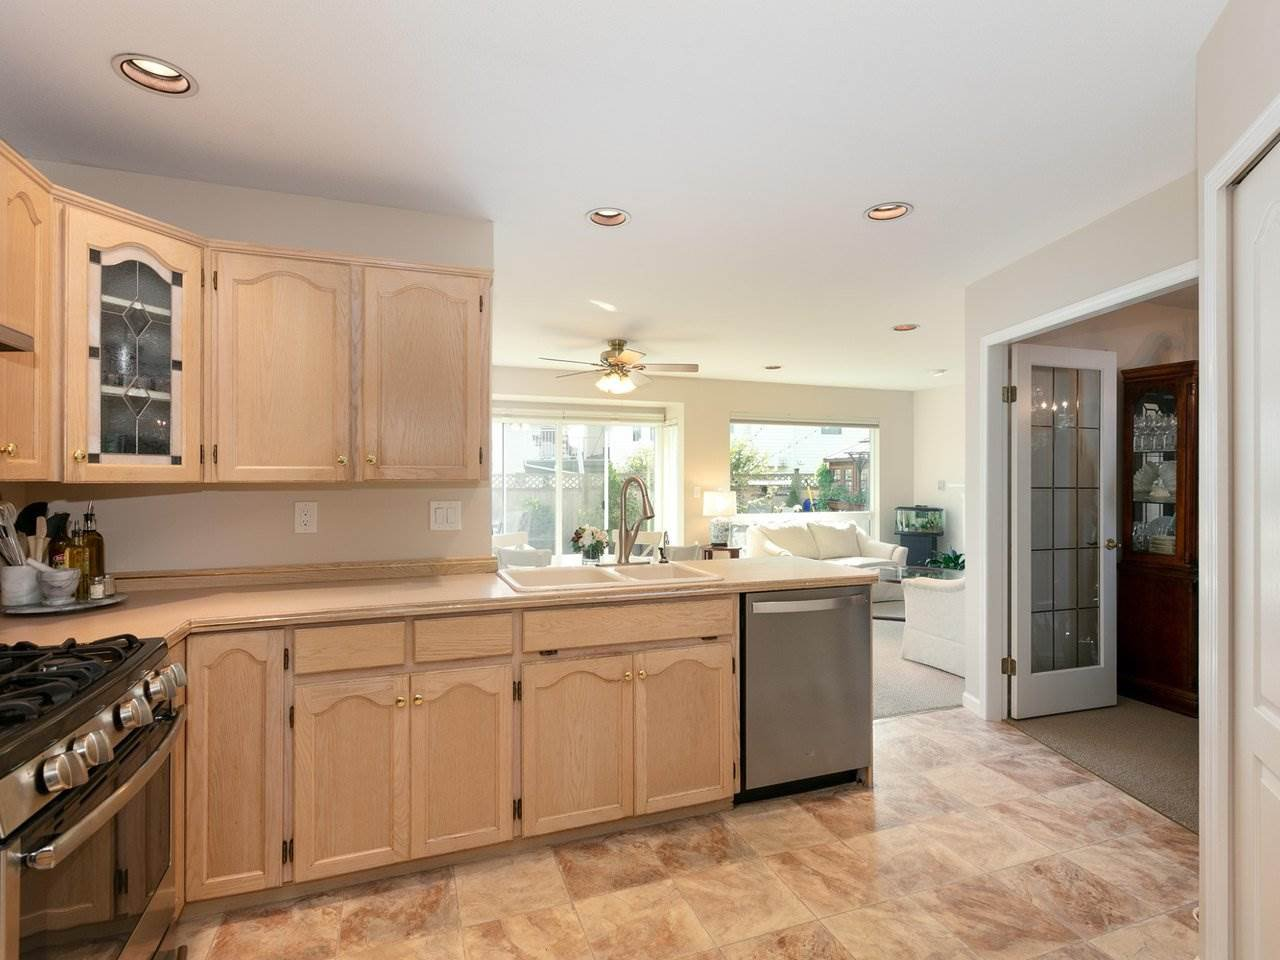 Photo 9: Photos: 19645 SOMERSET Drive in Pitt Meadows: Mid Meadows House for sale : MLS®# R2505880